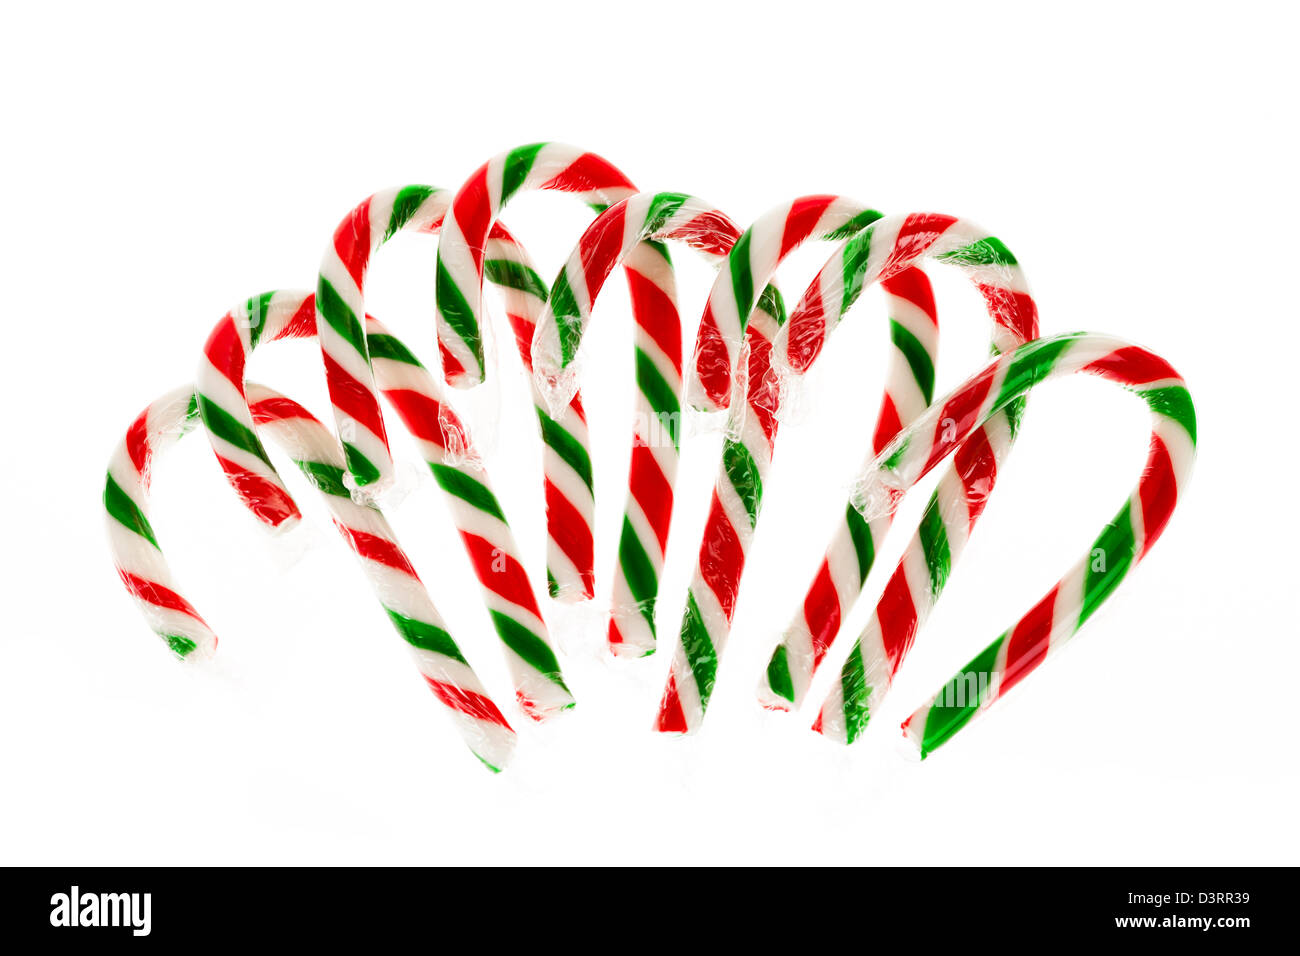 Christmas candy canes isolated on white background - Stock Image